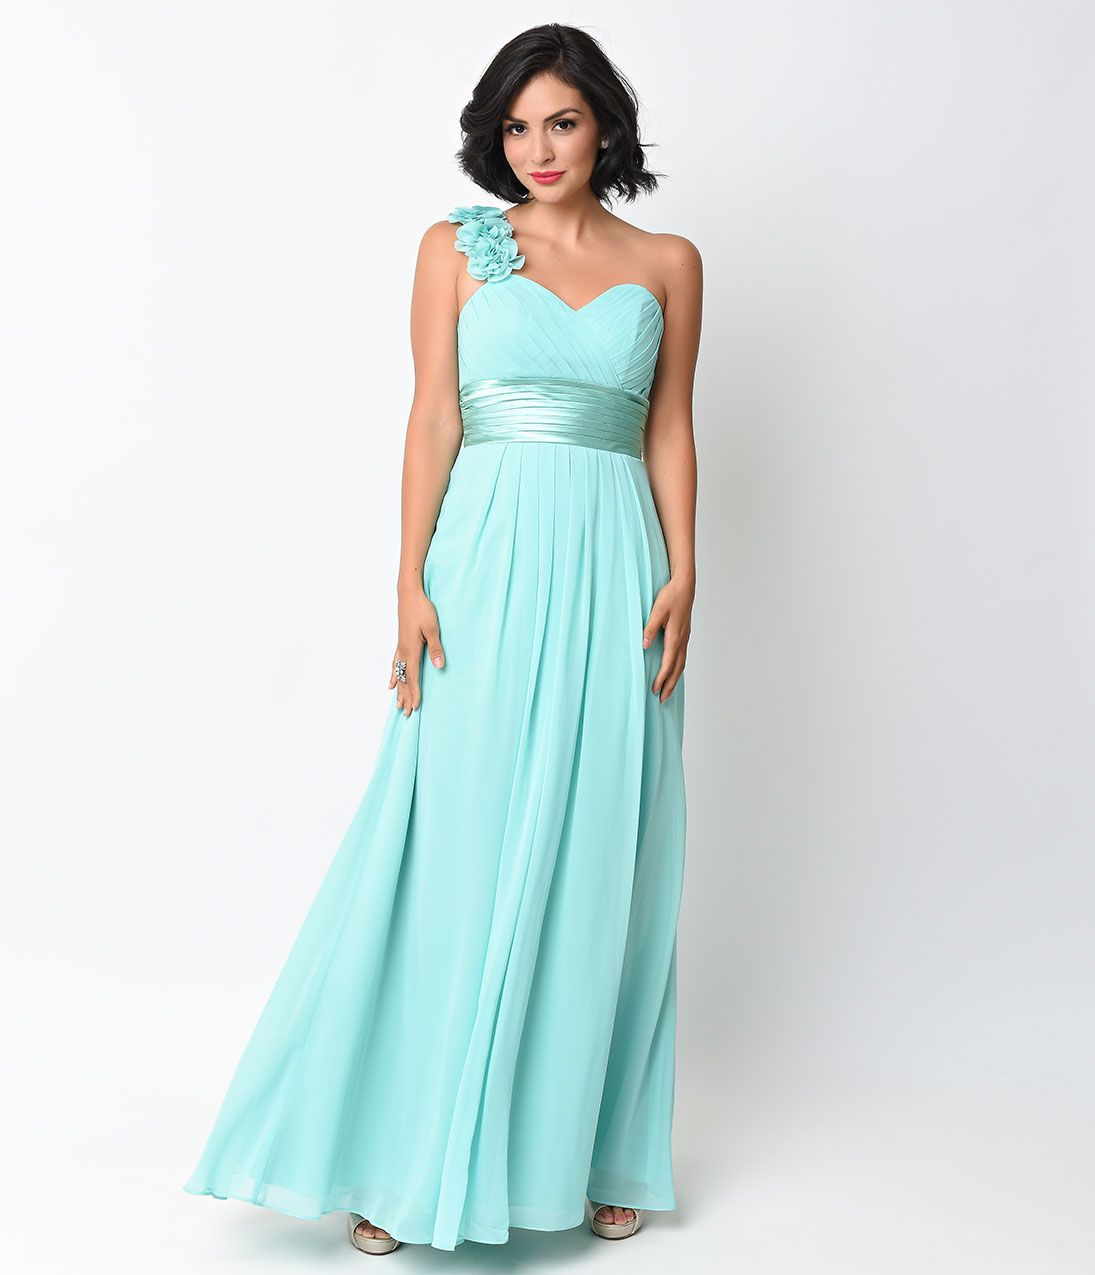 Kelly green chiffon floral cold shoulder long gown unique the perfect green bridesmaids gown or spring inspired prom style our bold kelly green chiffon floral cold shoulder gown is sure to steal the show ombrellifo Gallery